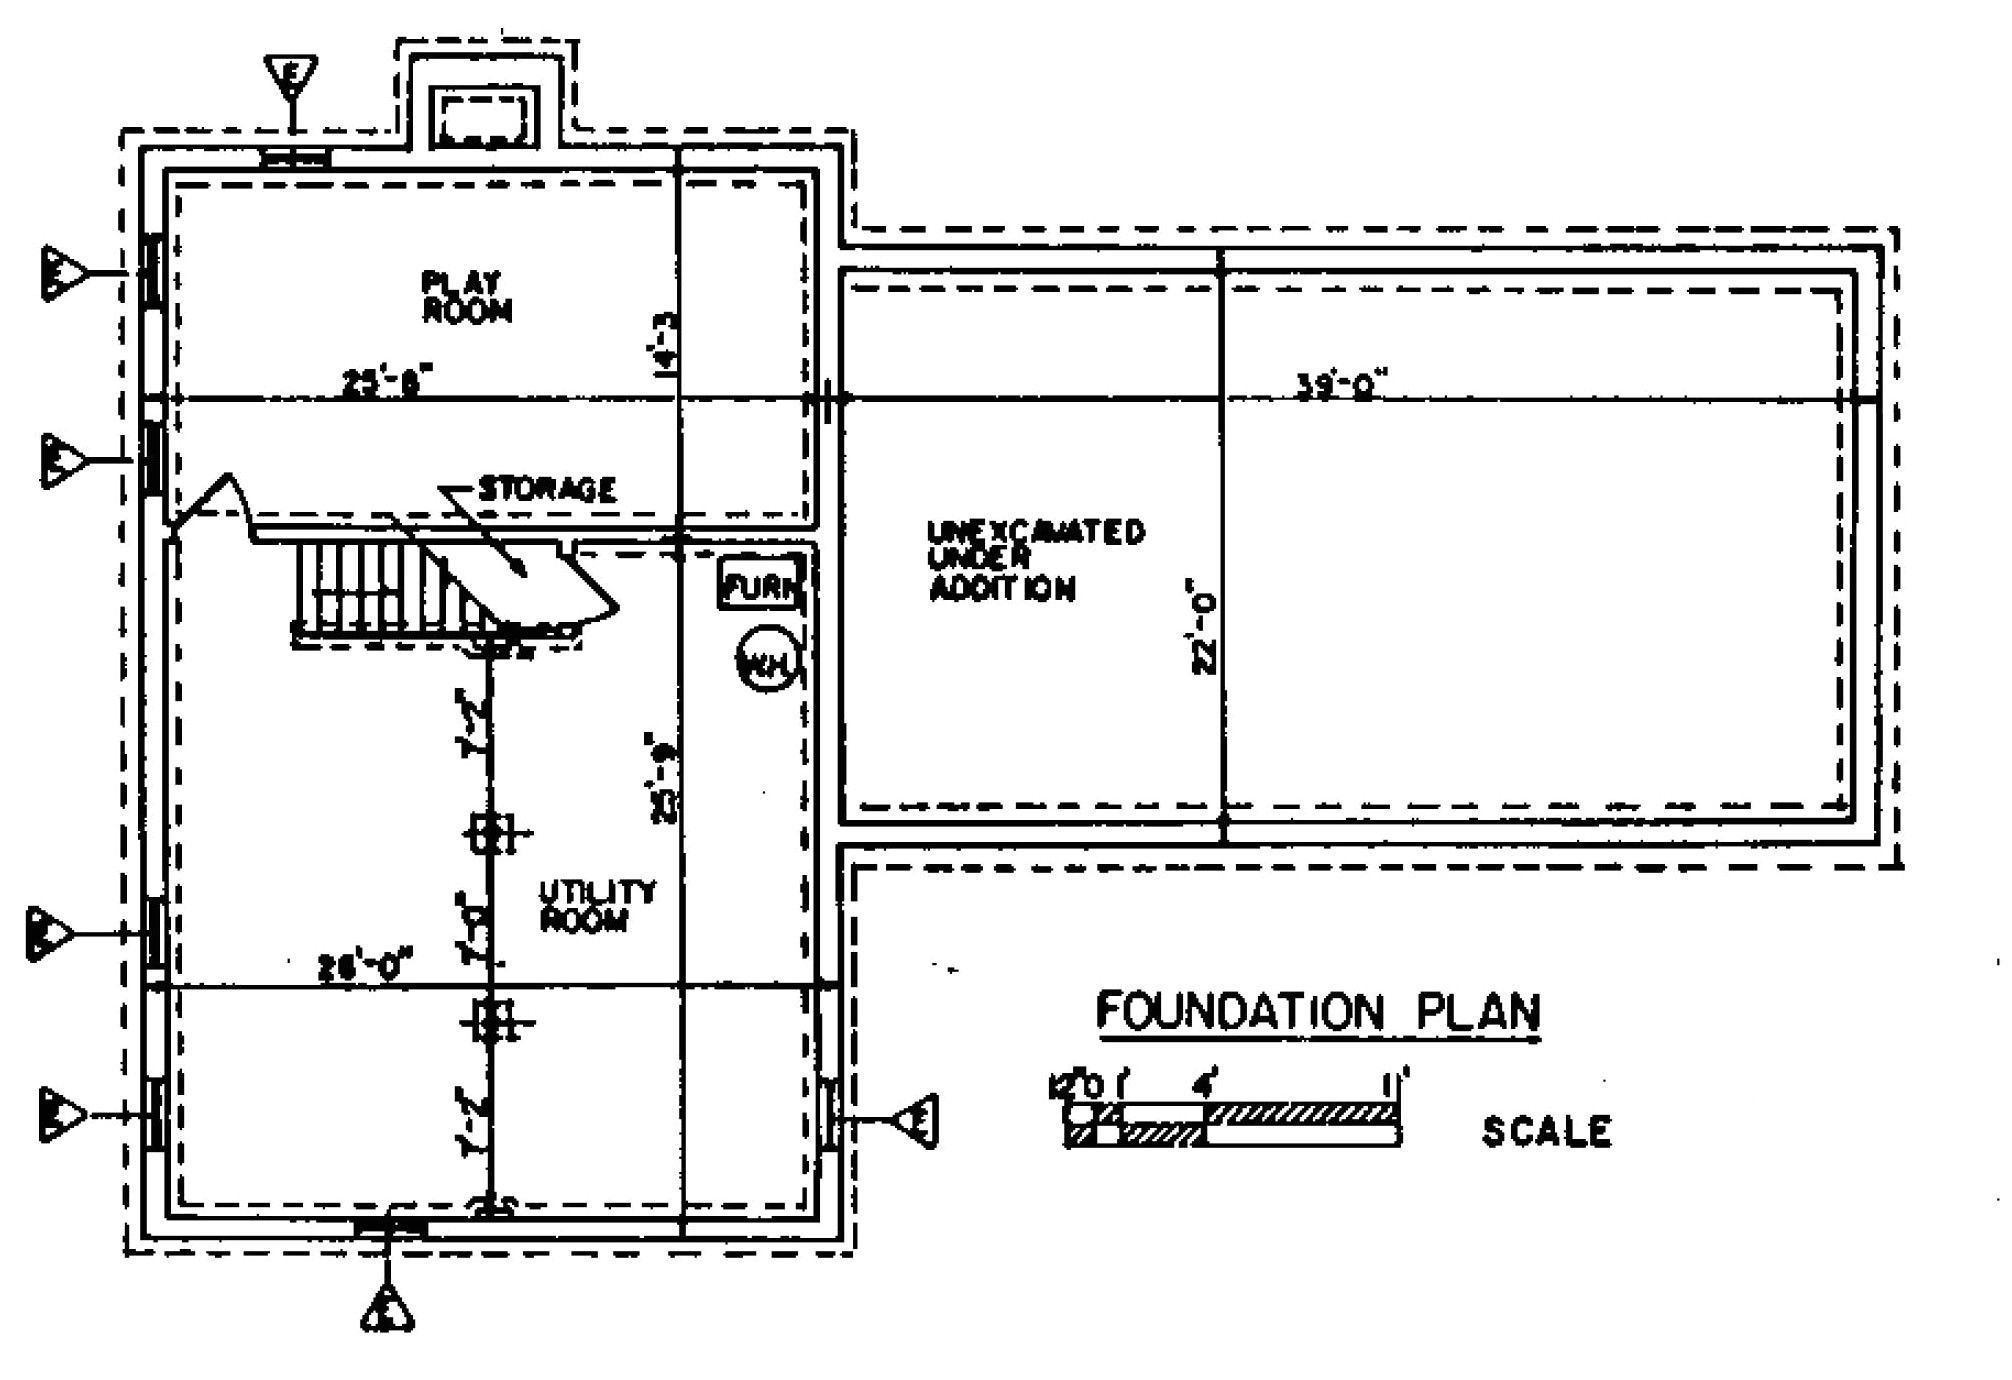 Home Foundation Plan